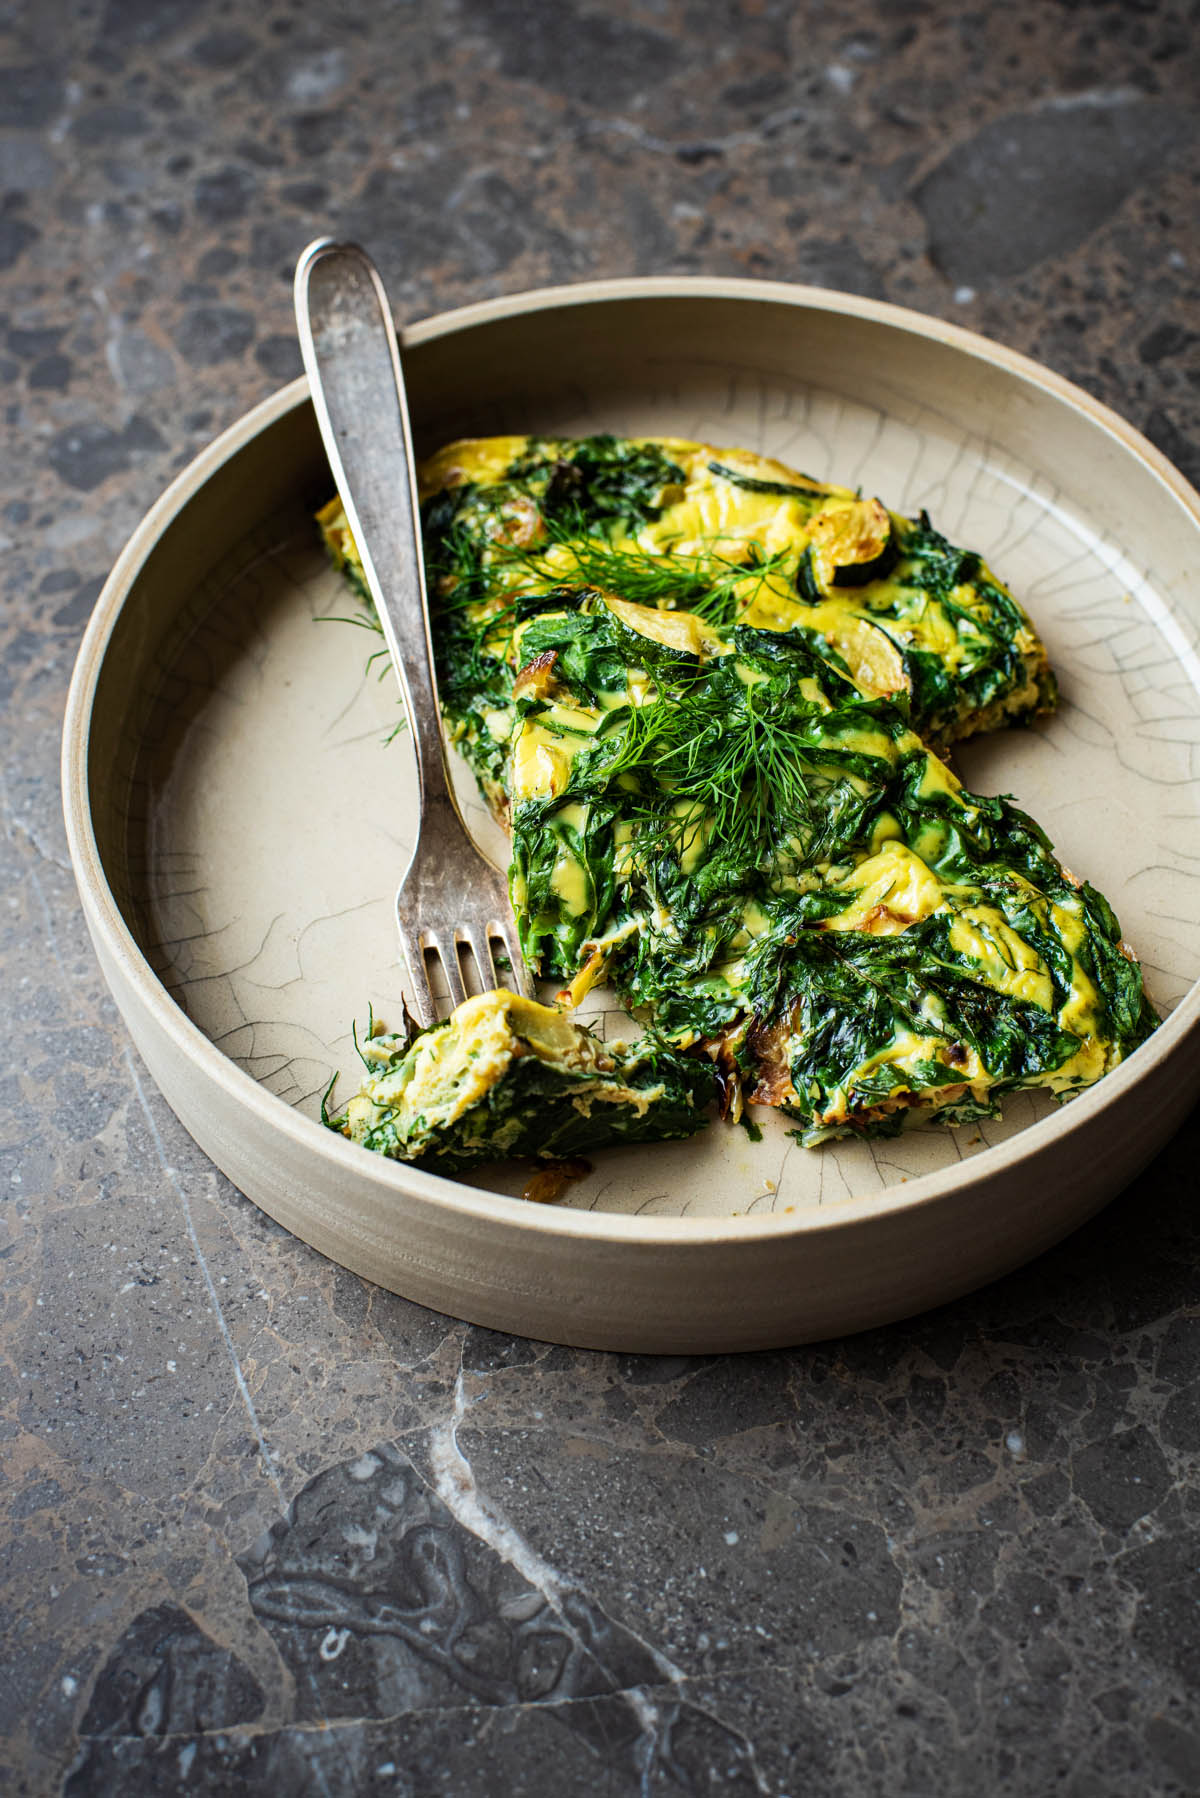 Two triangles of frittata in a deep plate with a piece speared onto a fork.